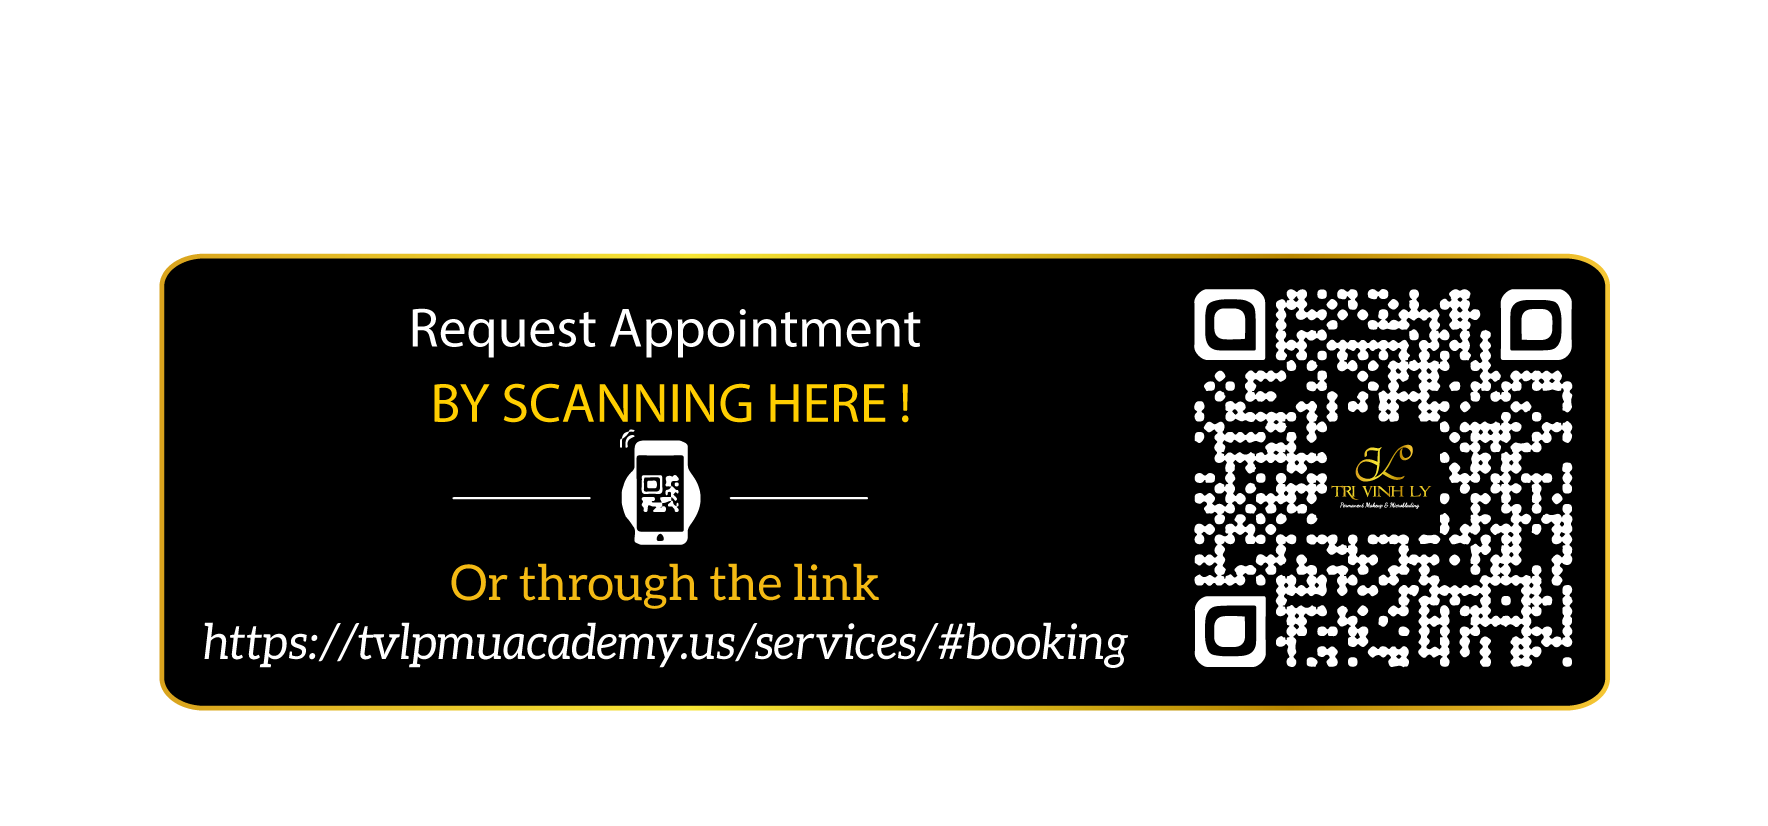 request-appointment-1